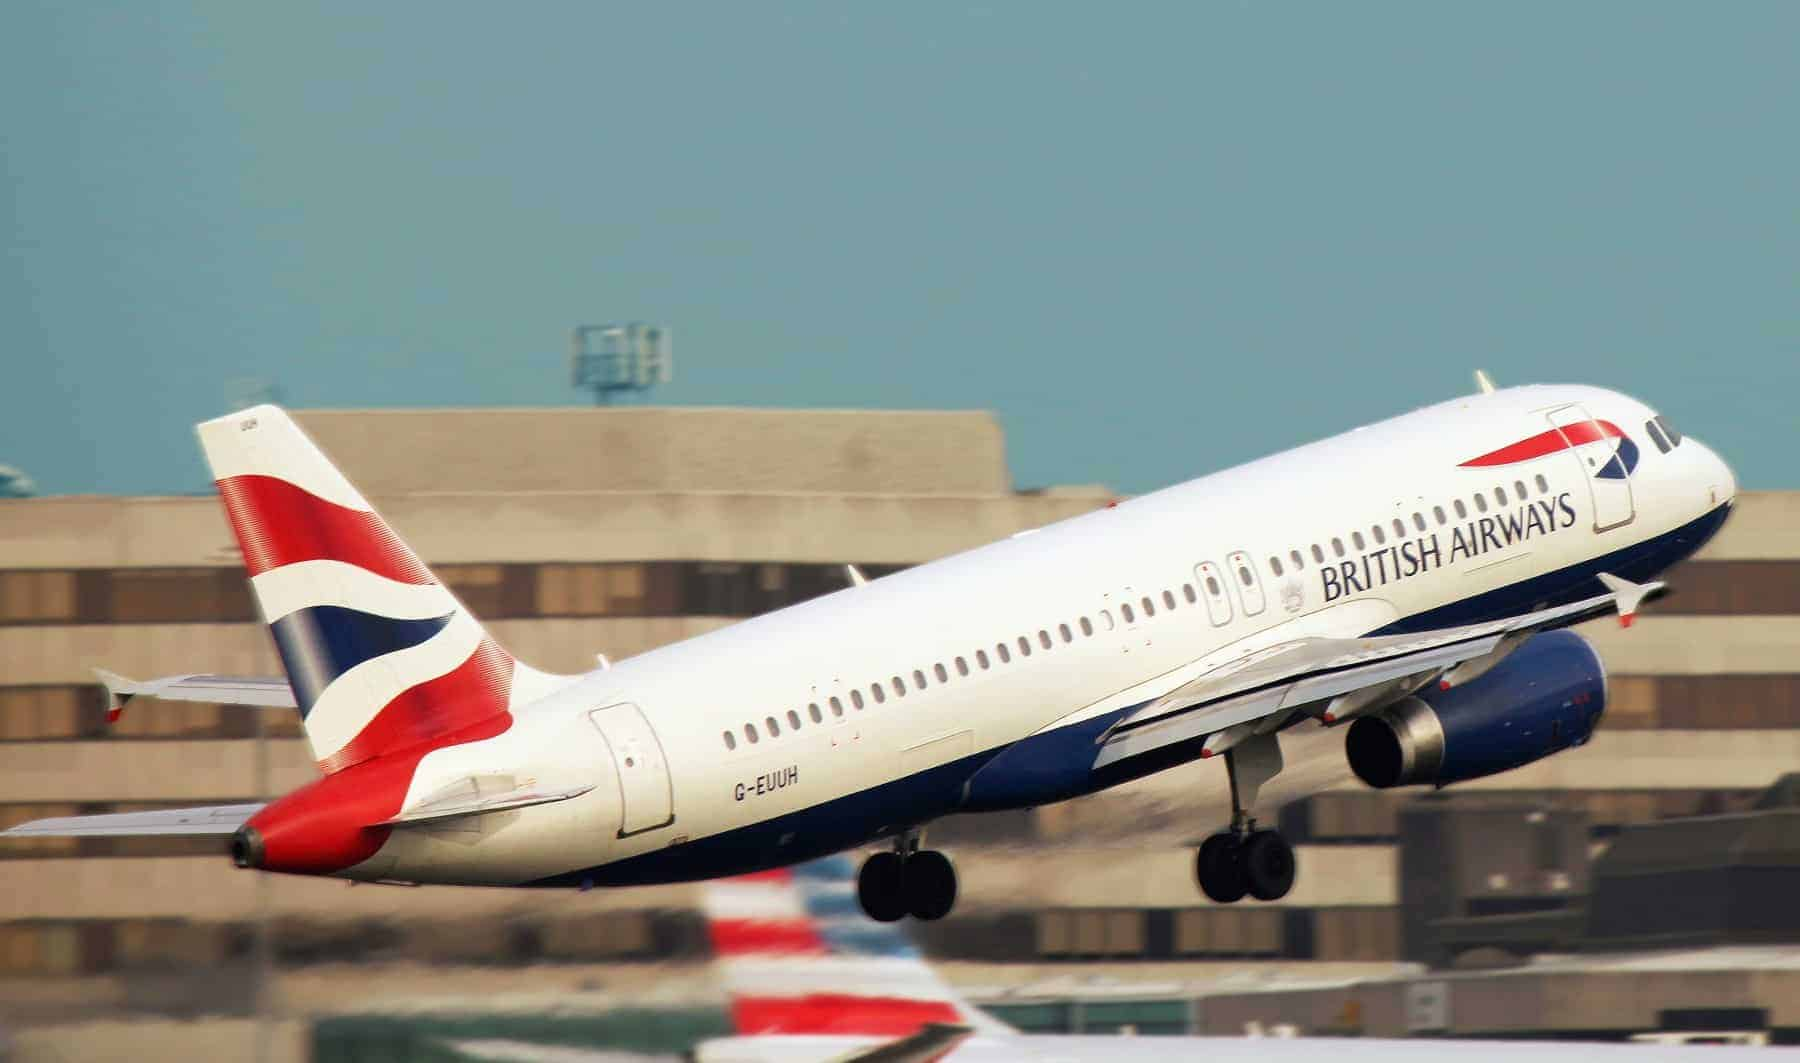 The British Airways security breach and how GDPR helped